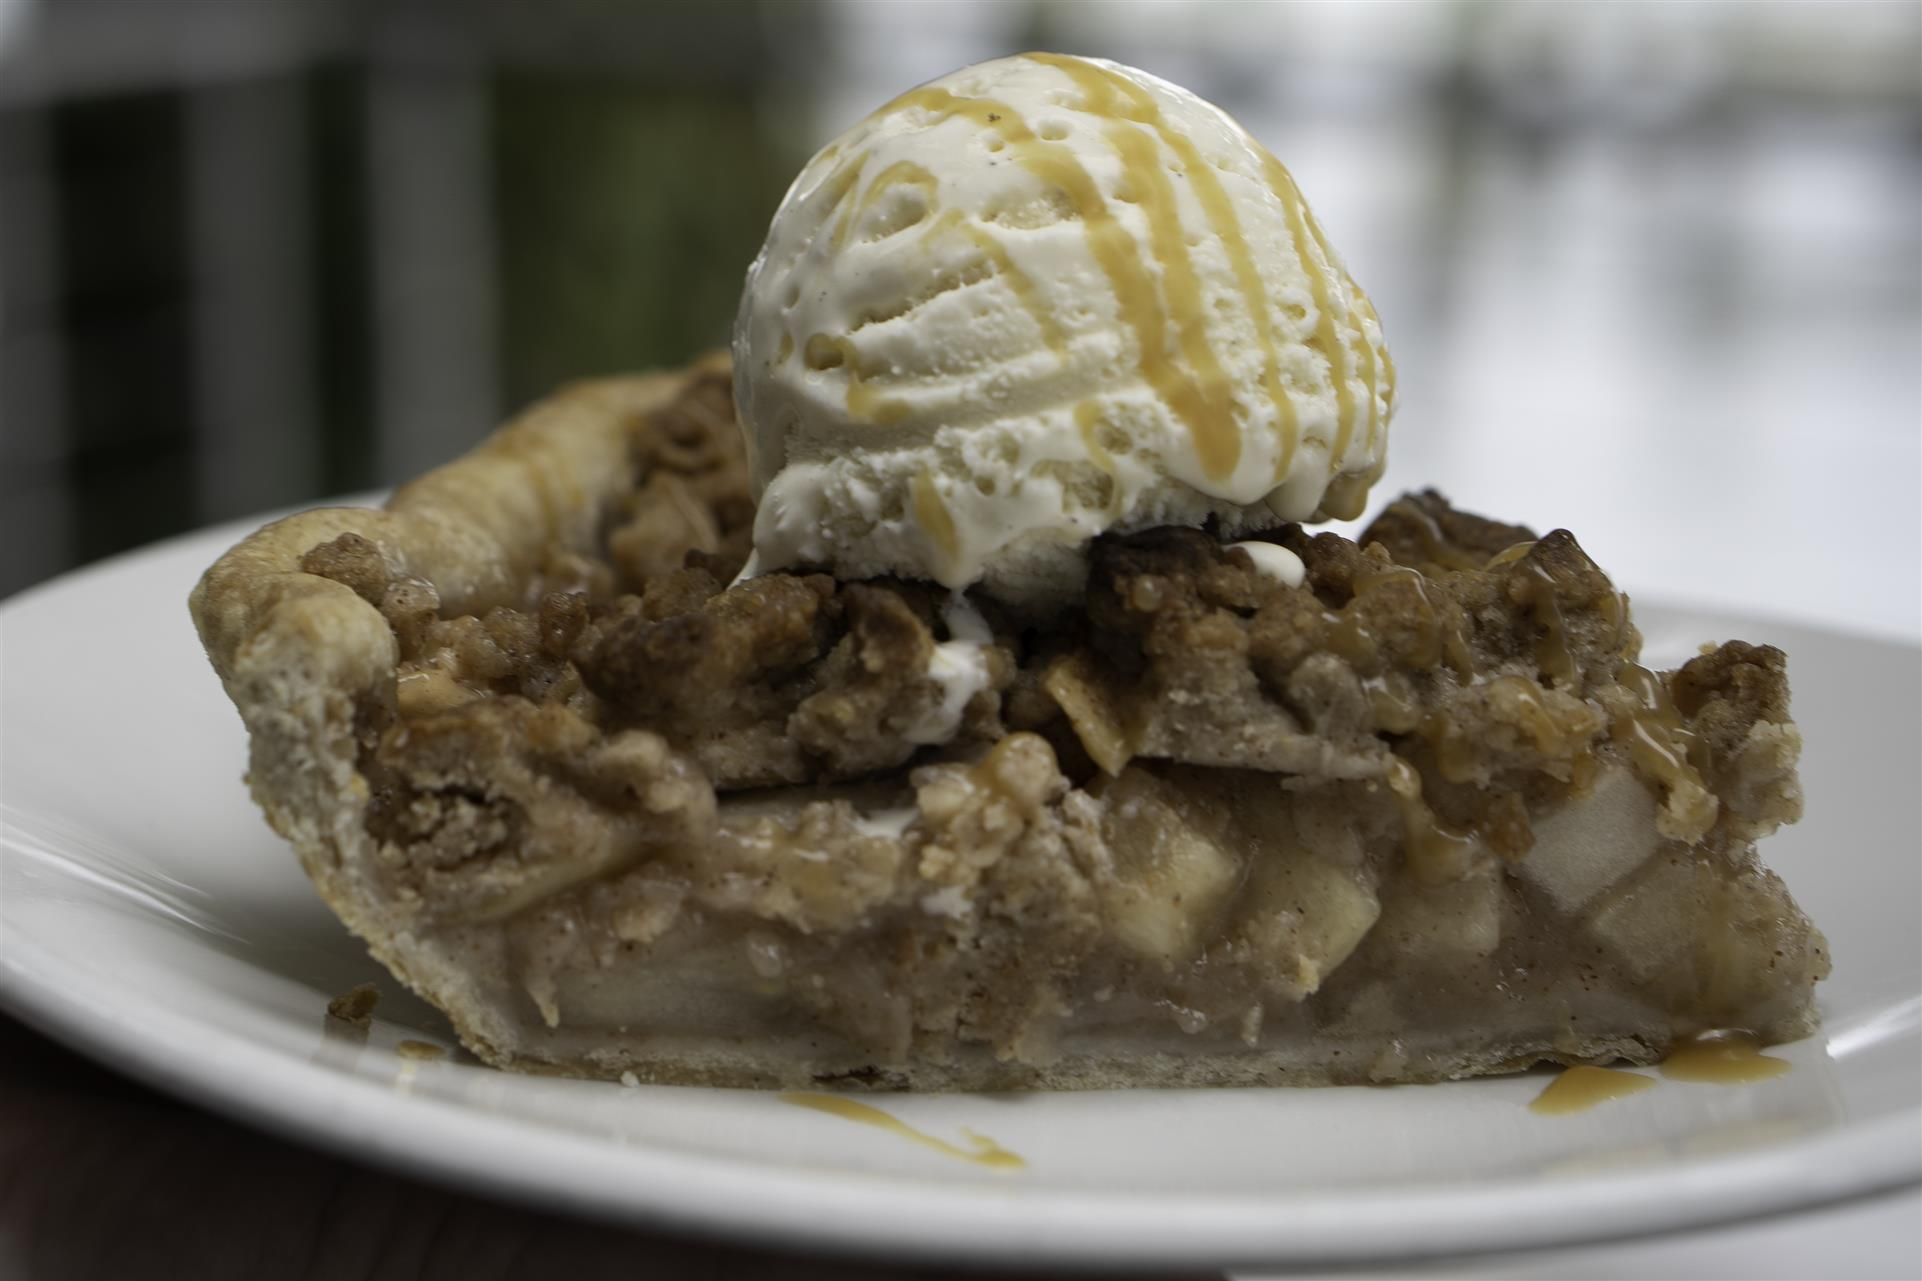 piece of pie with ice cream on top